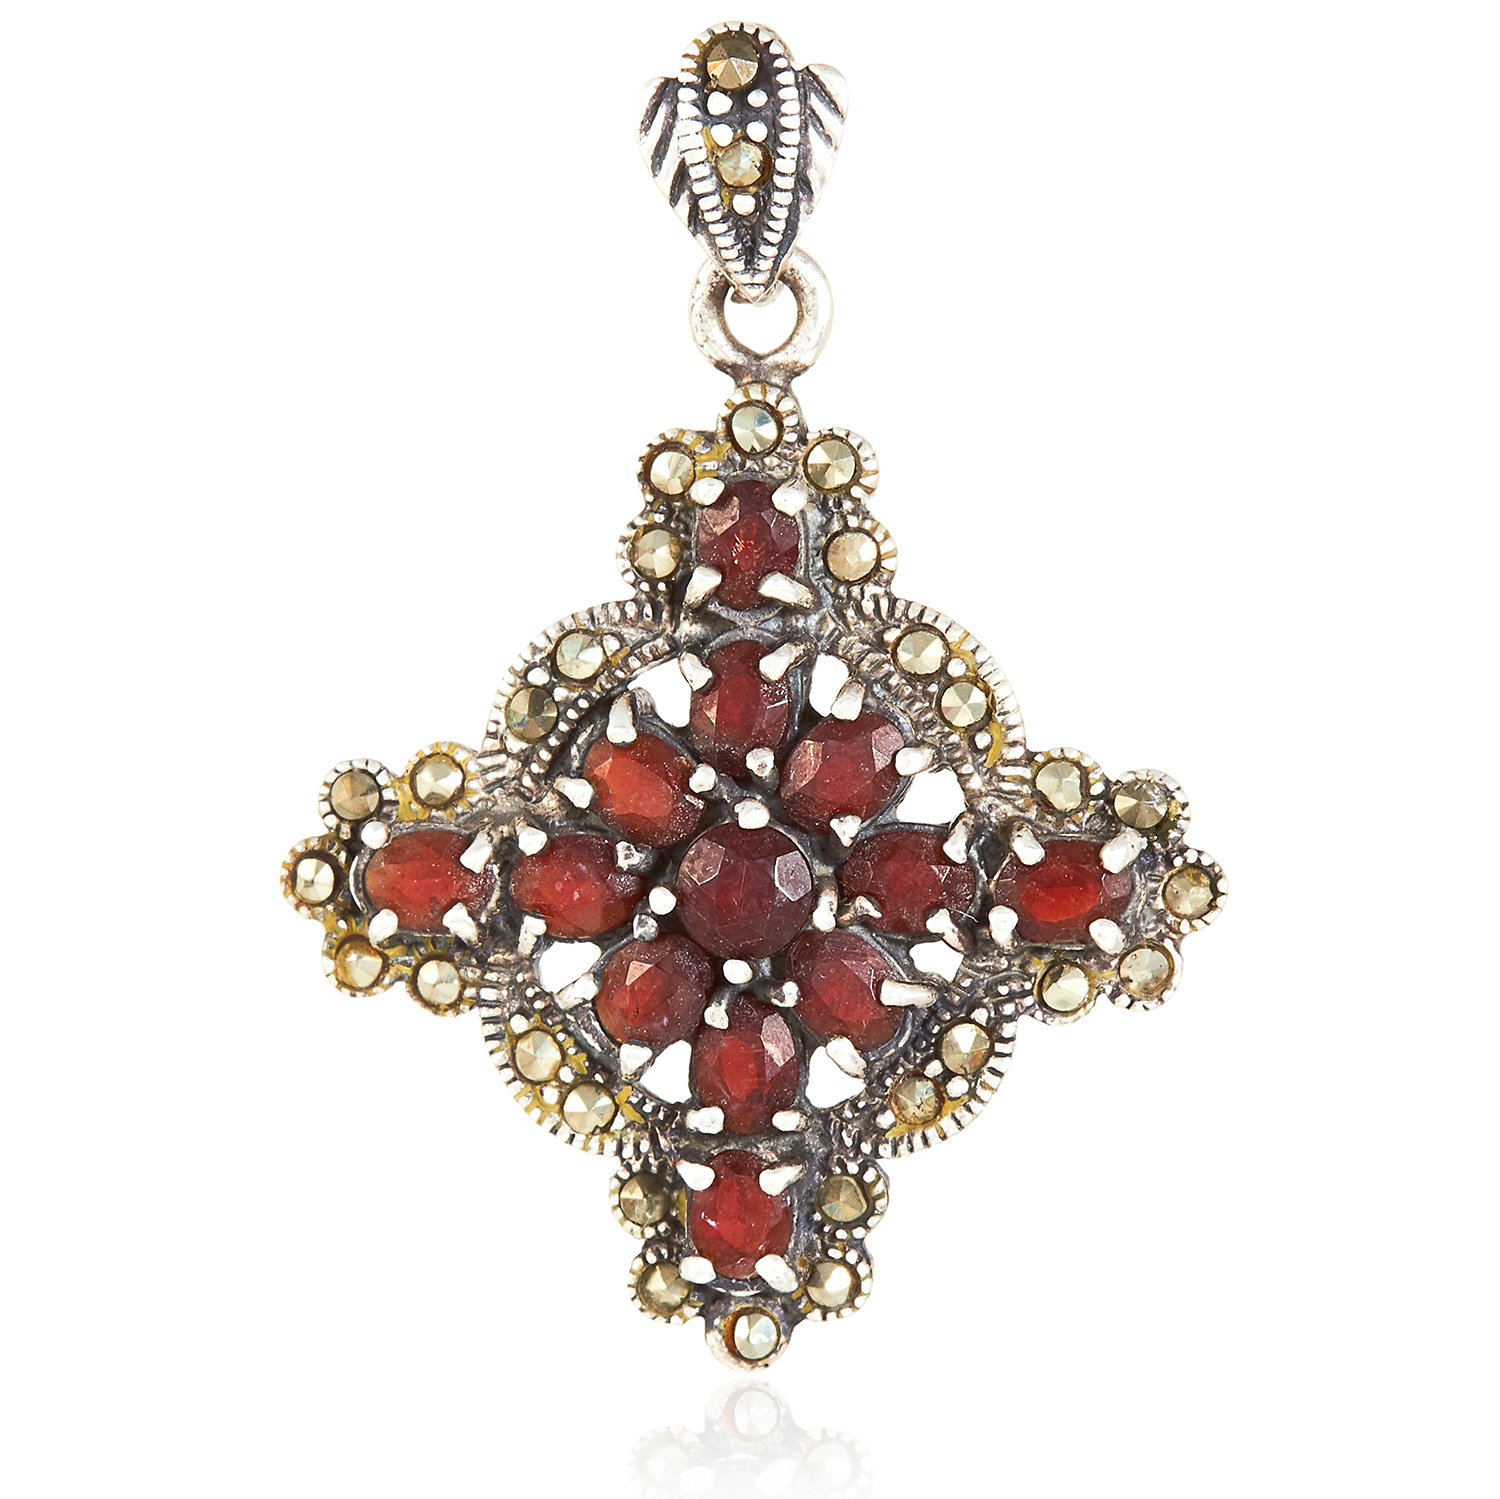 A RED GEMSTONE AND MARCASITE CROSS PENDANT in sterling silver, set with round and oval cut red